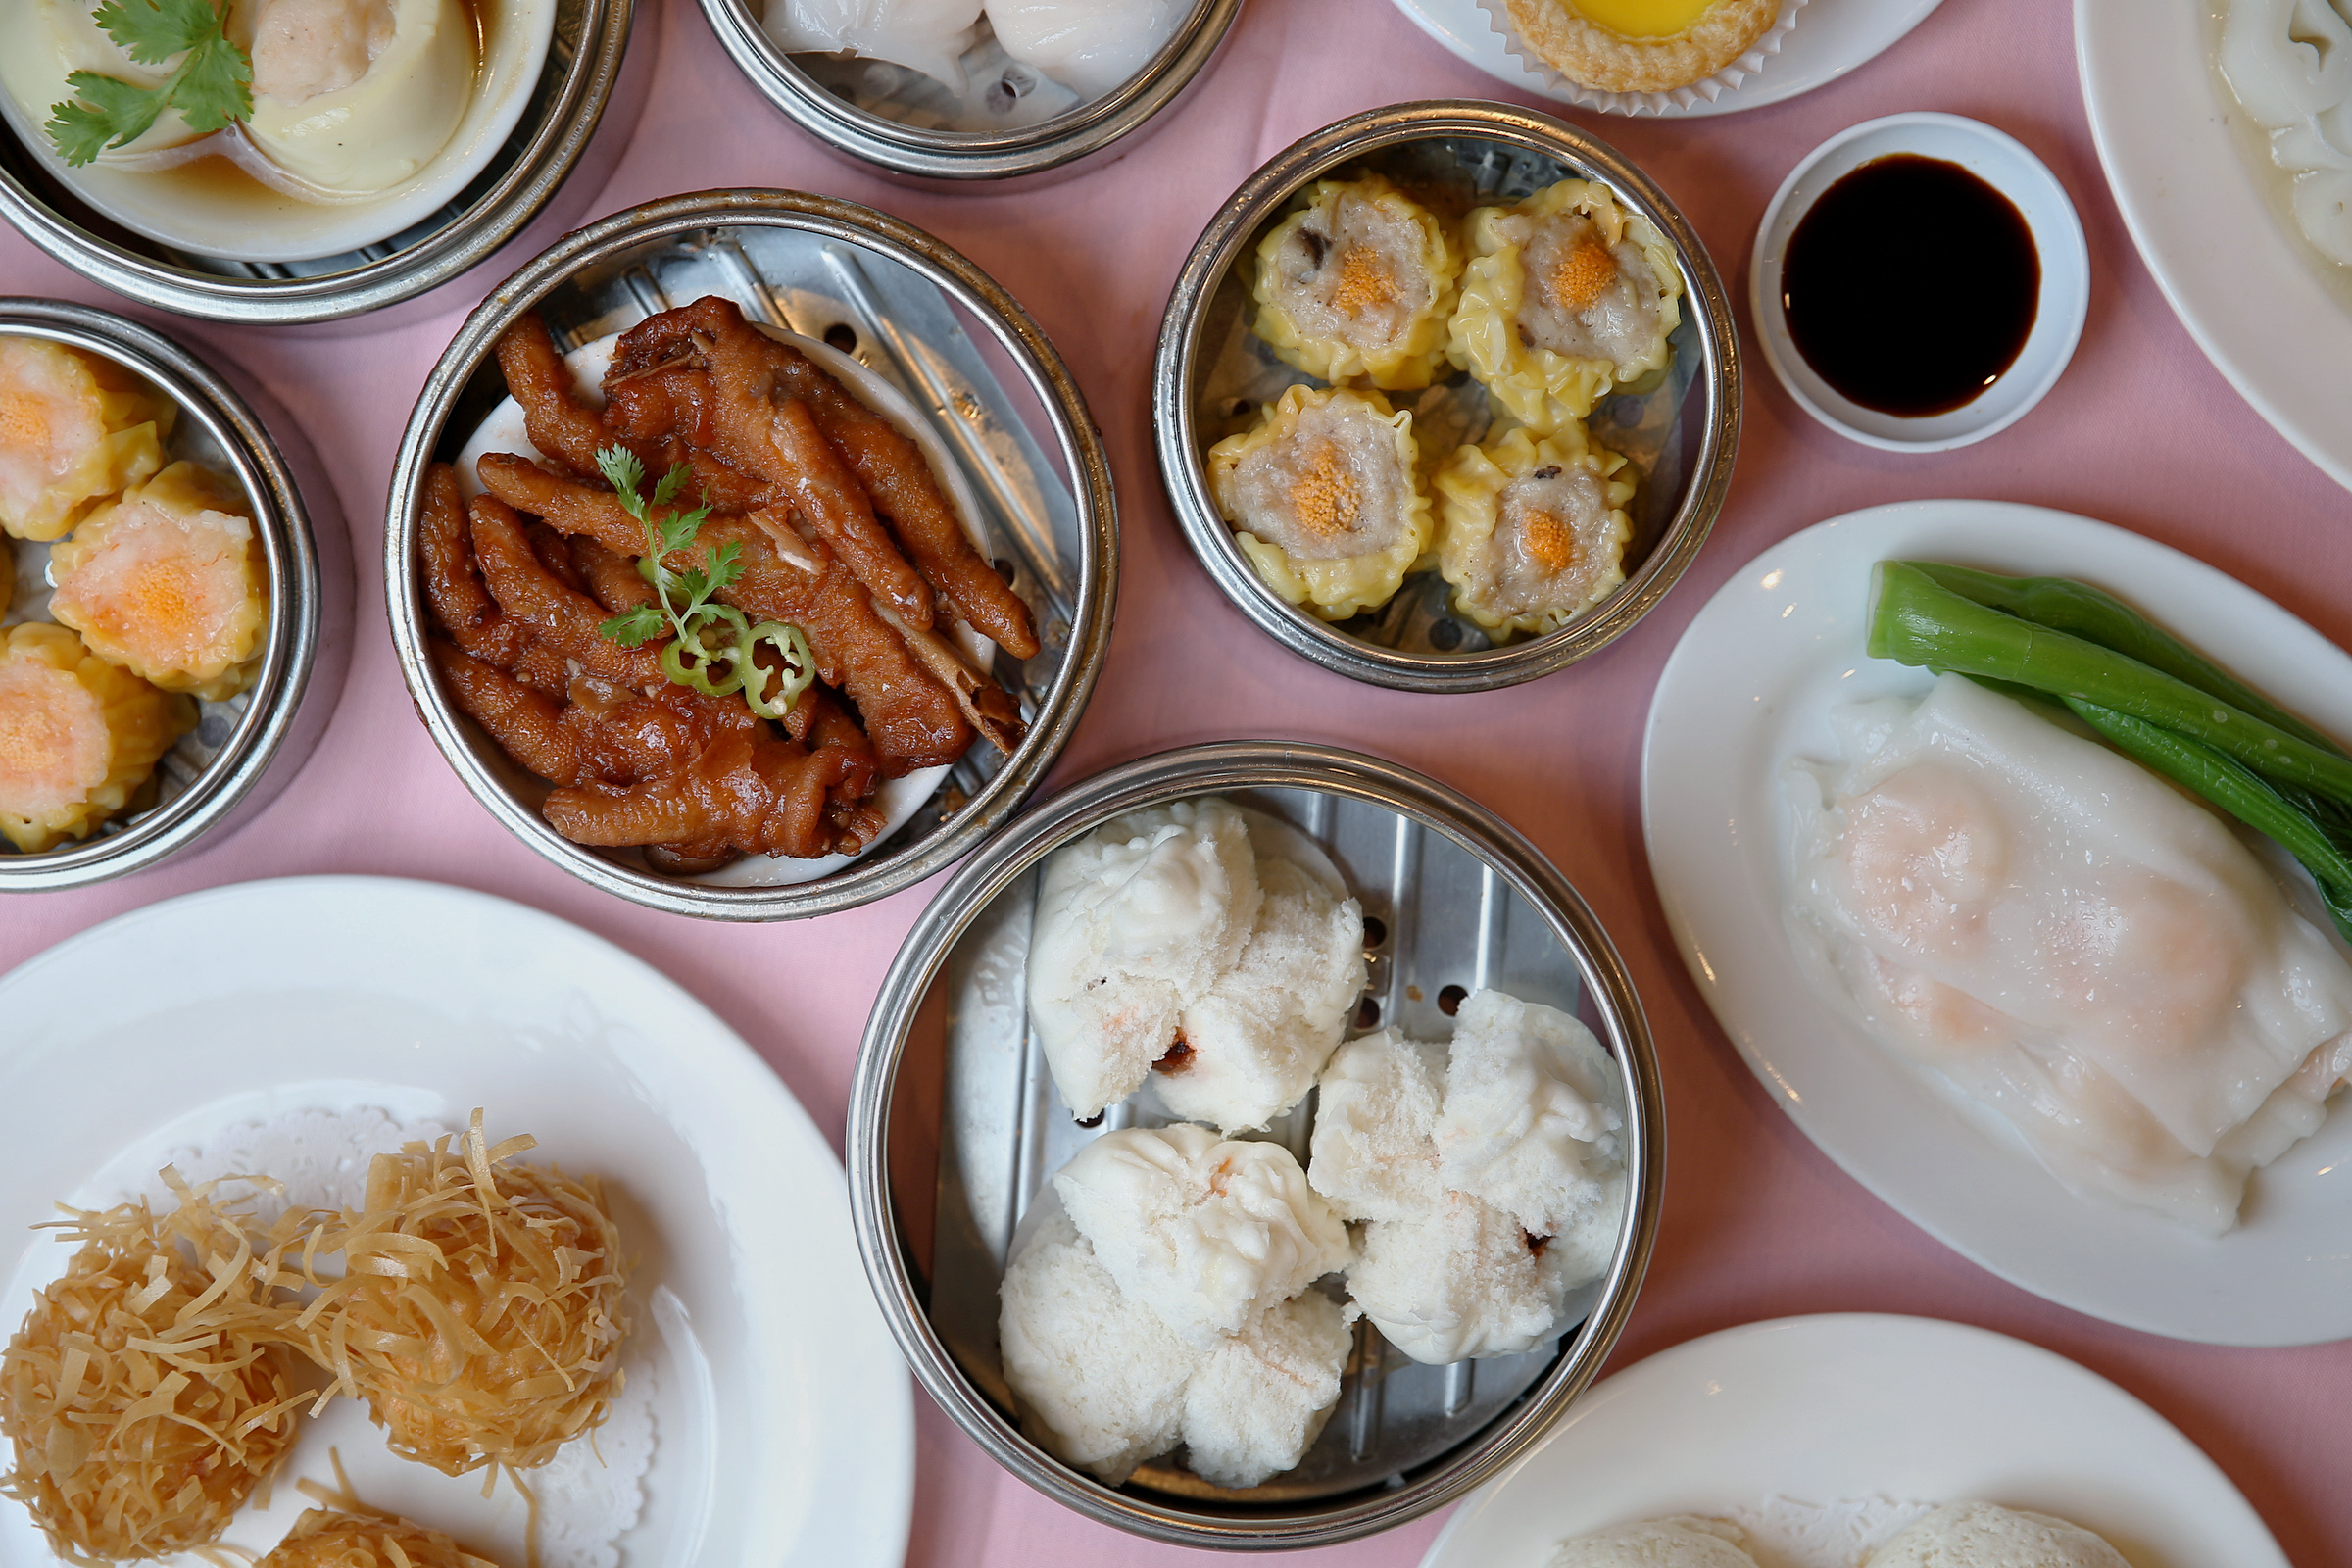 Dim sum dishes are the day time draw to China Gourmet in Northeast Philadelphia.